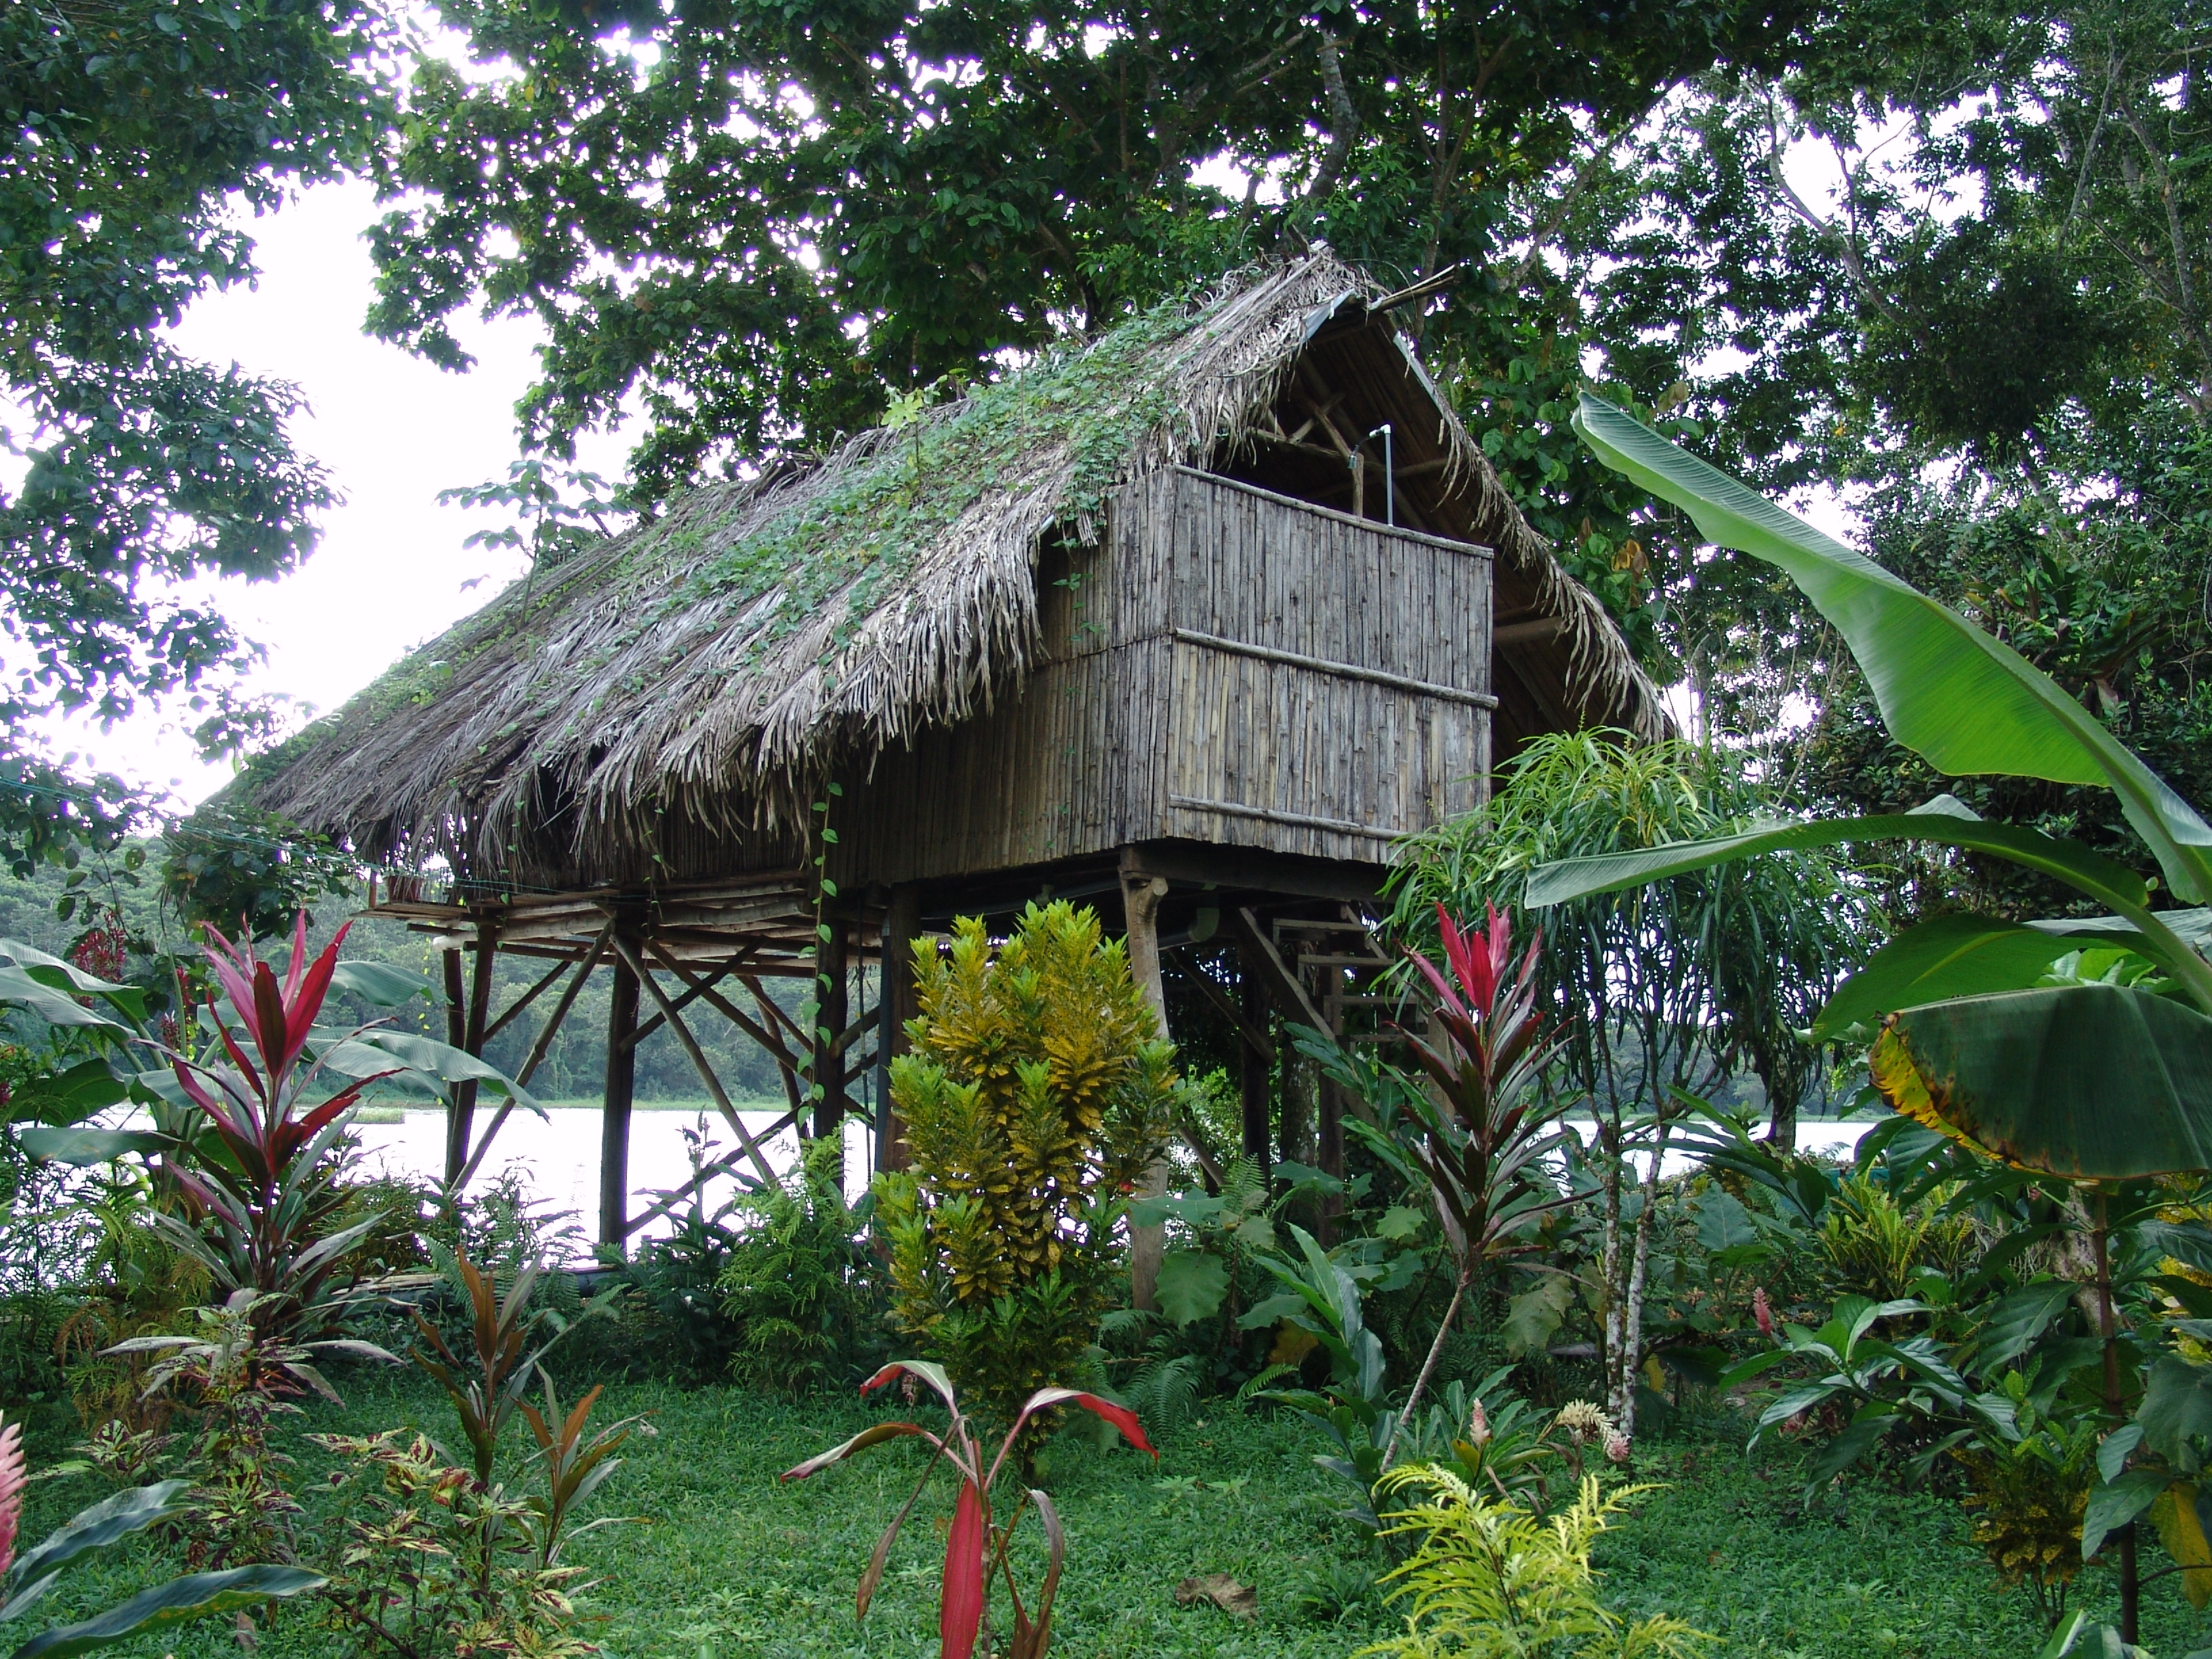 Wooden lodge visited while on Birdwatching in Nicaragua